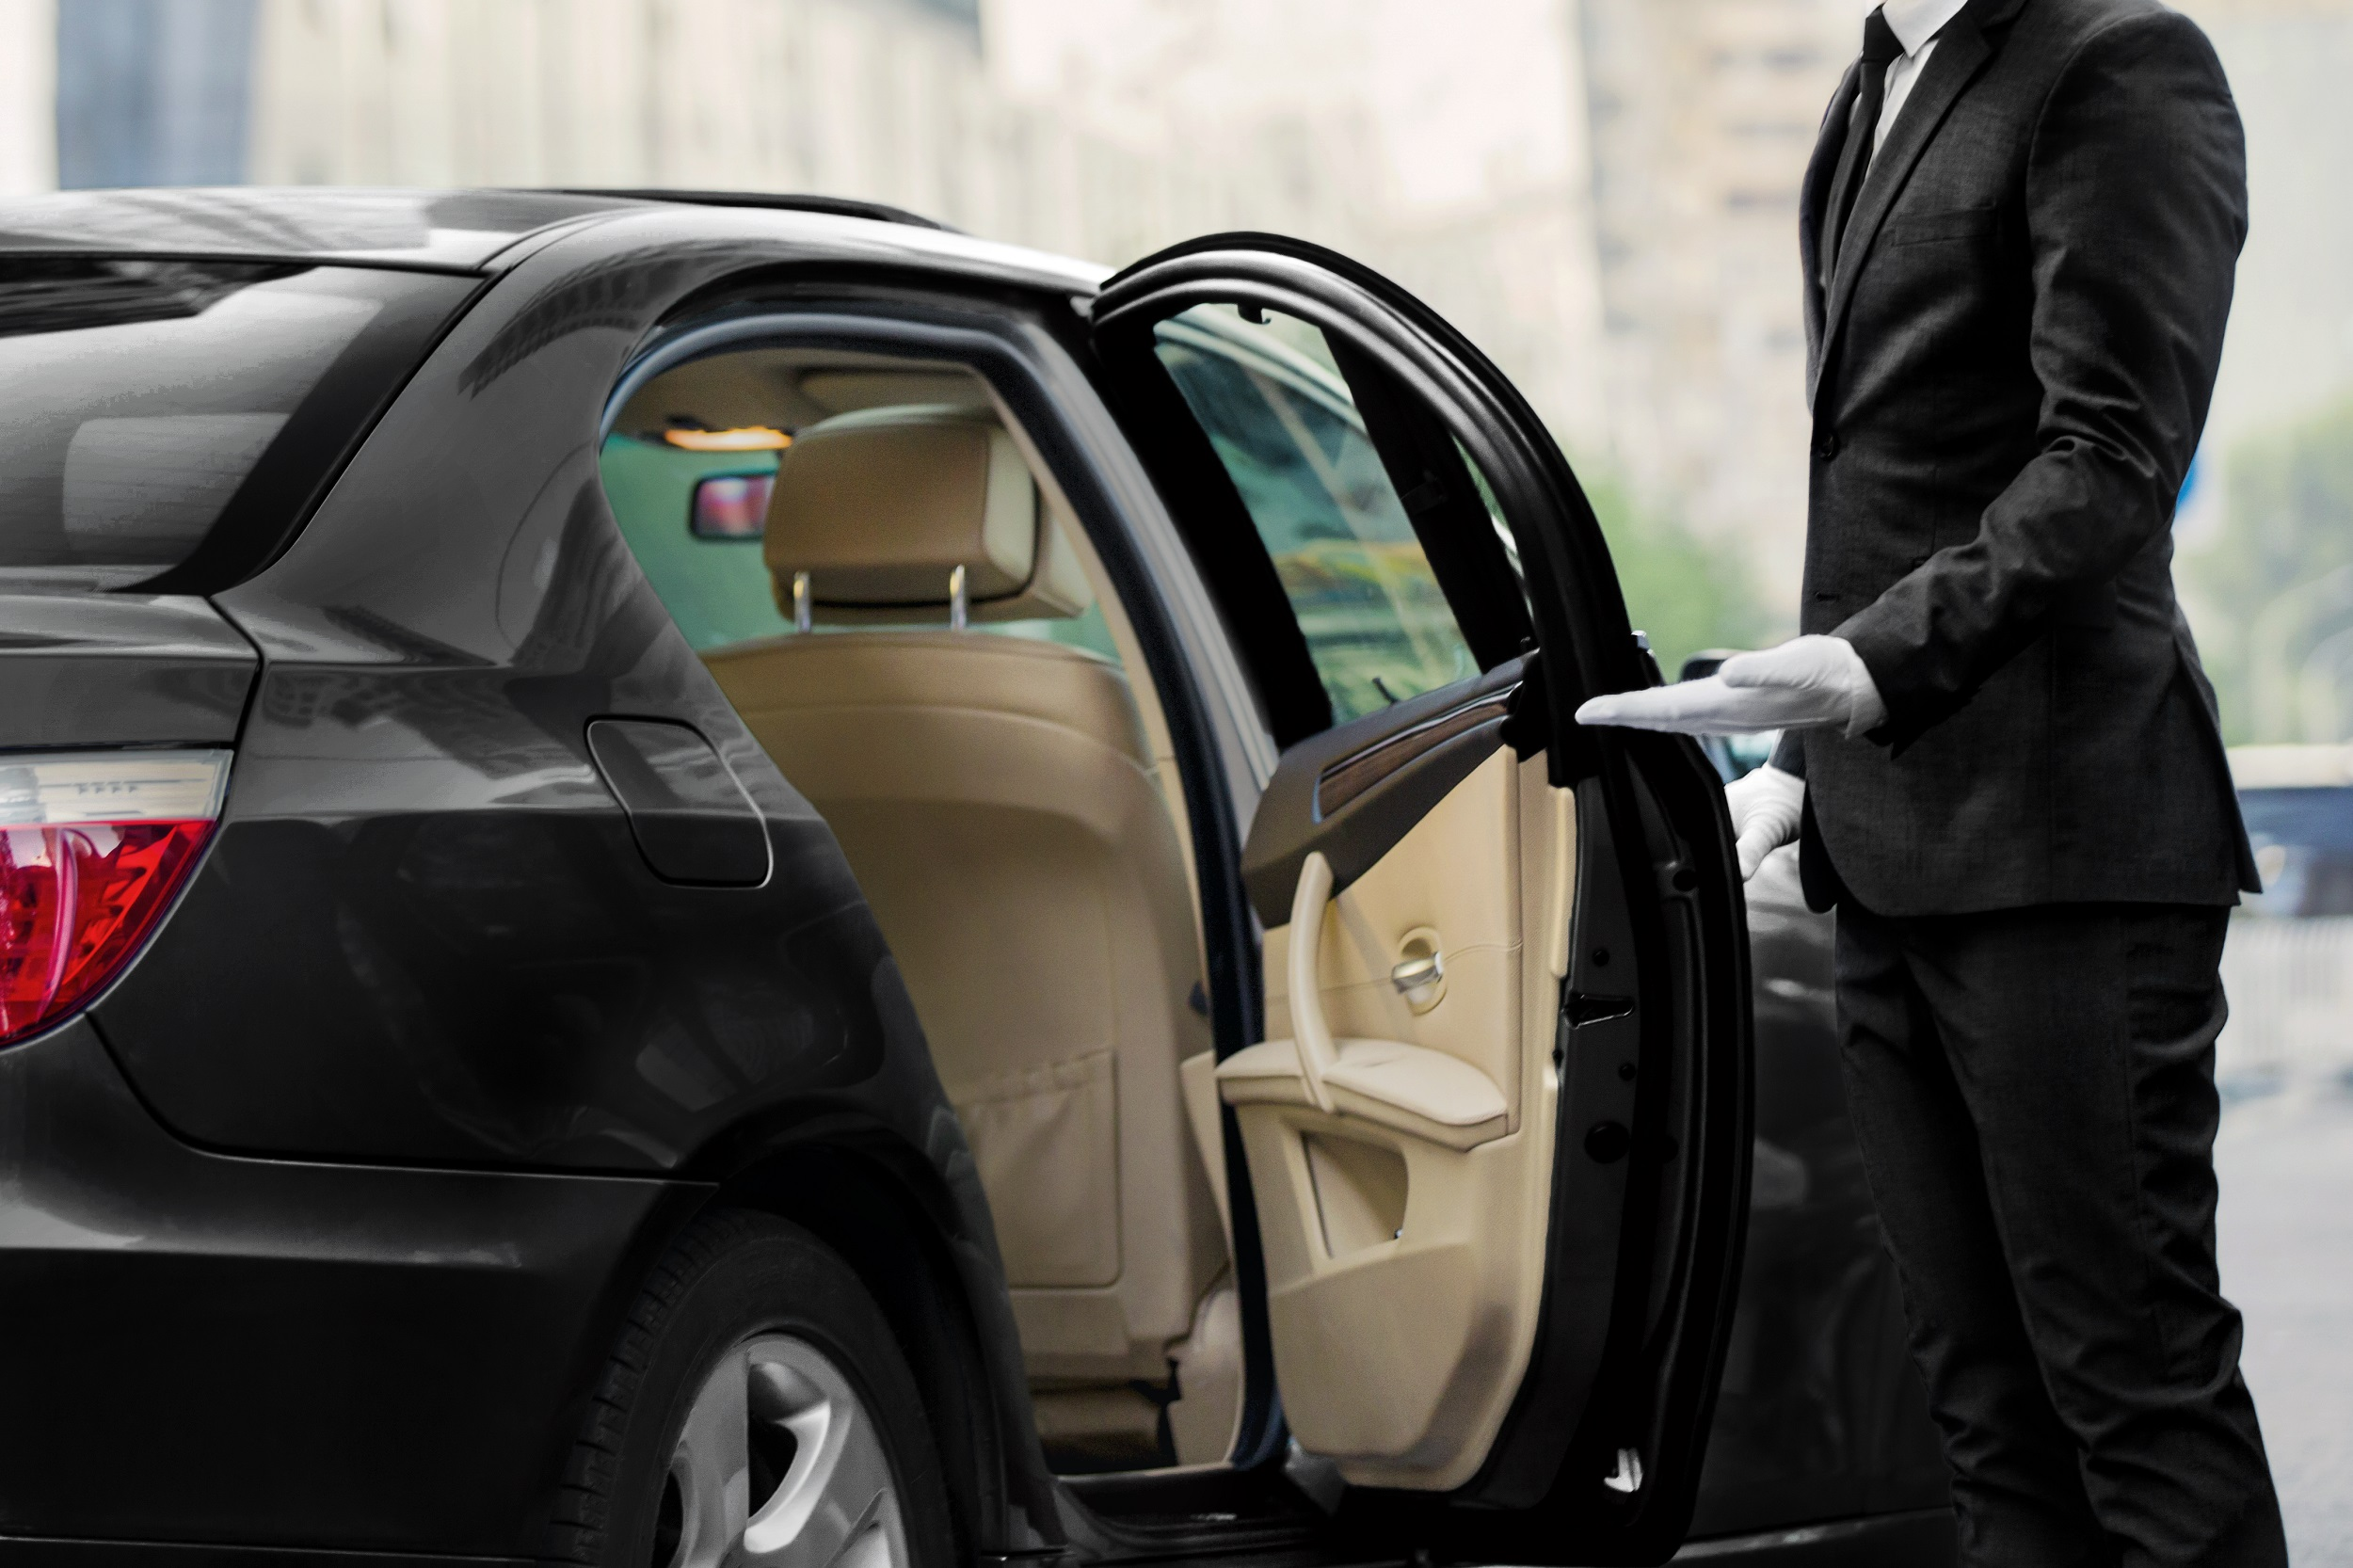 Silversea Cruises has become the first ultra-luxury cruise line to offer guests private executive transfers as standard after entering into an exclusive collaboration with global chauffeur service Blacklane.